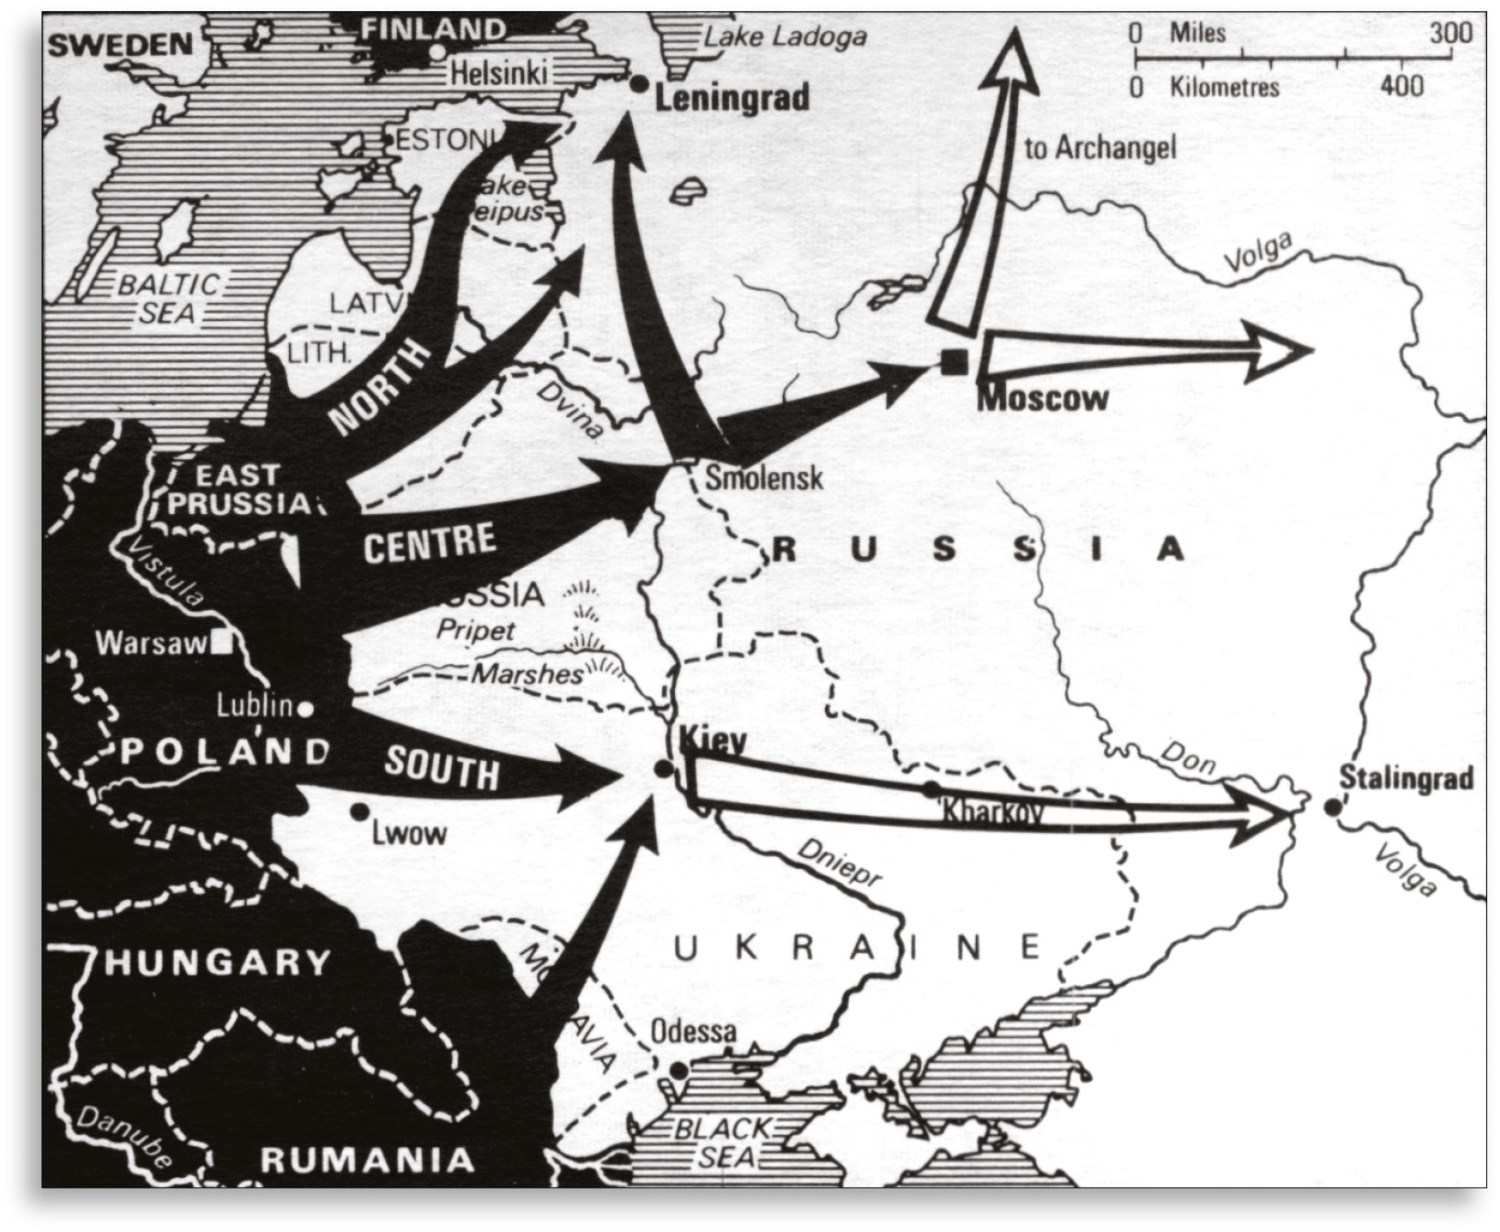 RIGHT A simplified plan of Operation Barbarossa which almost succeeded, thanks to the massive self-inflicted wound of the Stalinist purges of the late 1930s.